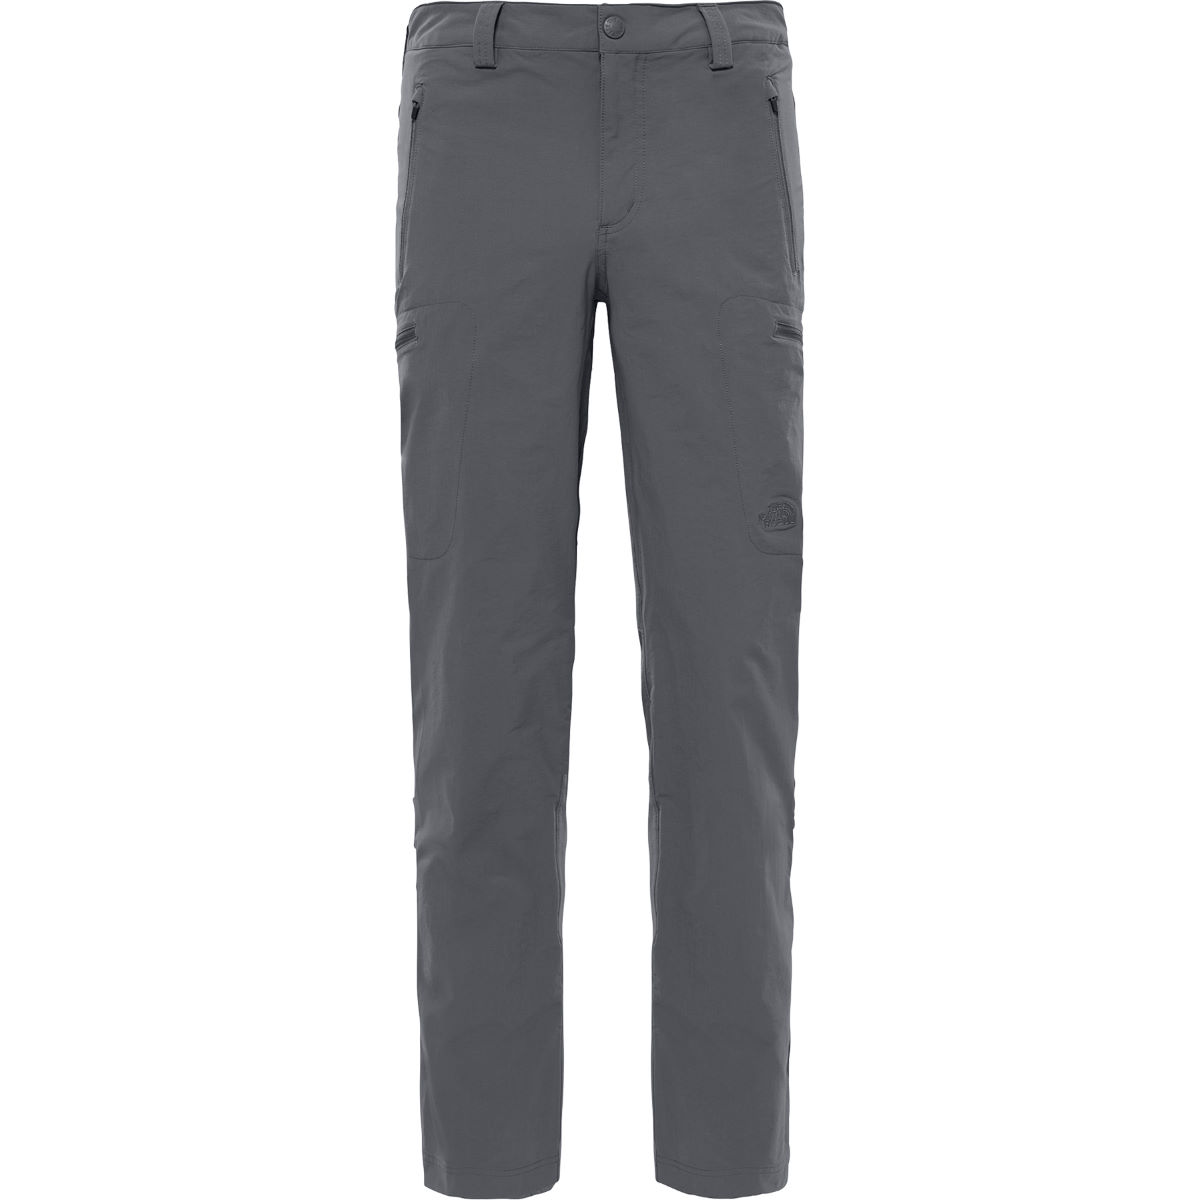 Pantalon The North Face Exploration - 30R Asphalt Grey